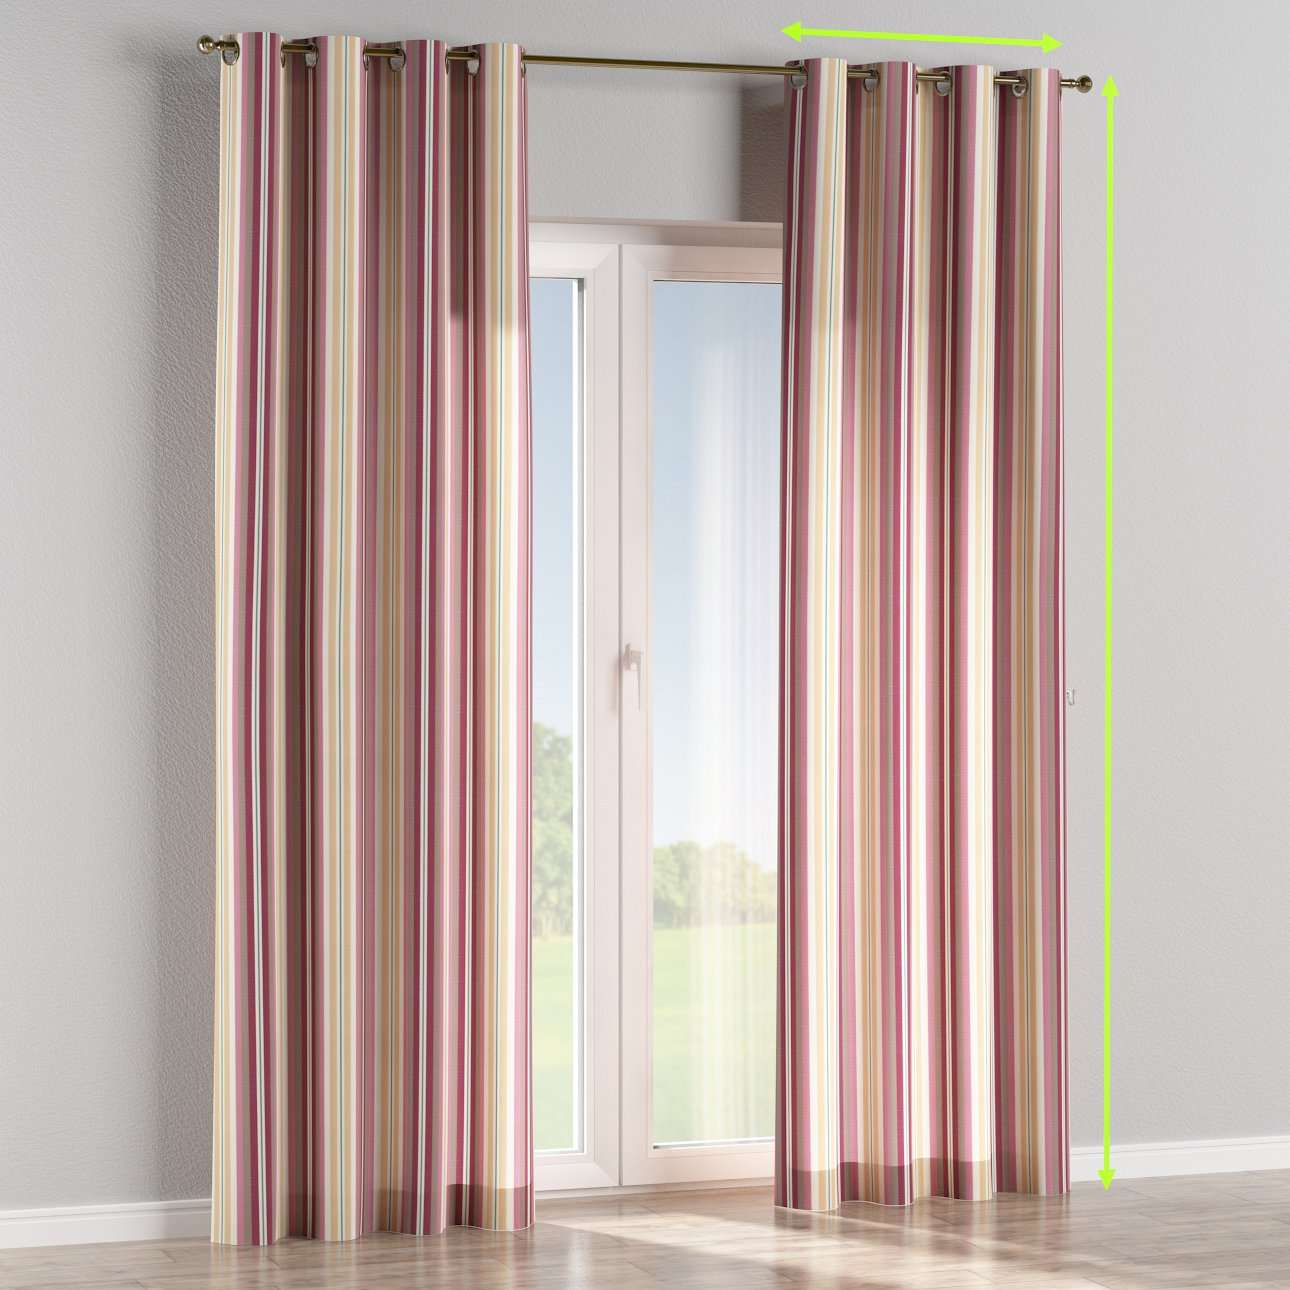 Eyelet curtains in collection Mirella, fabric: 141-14